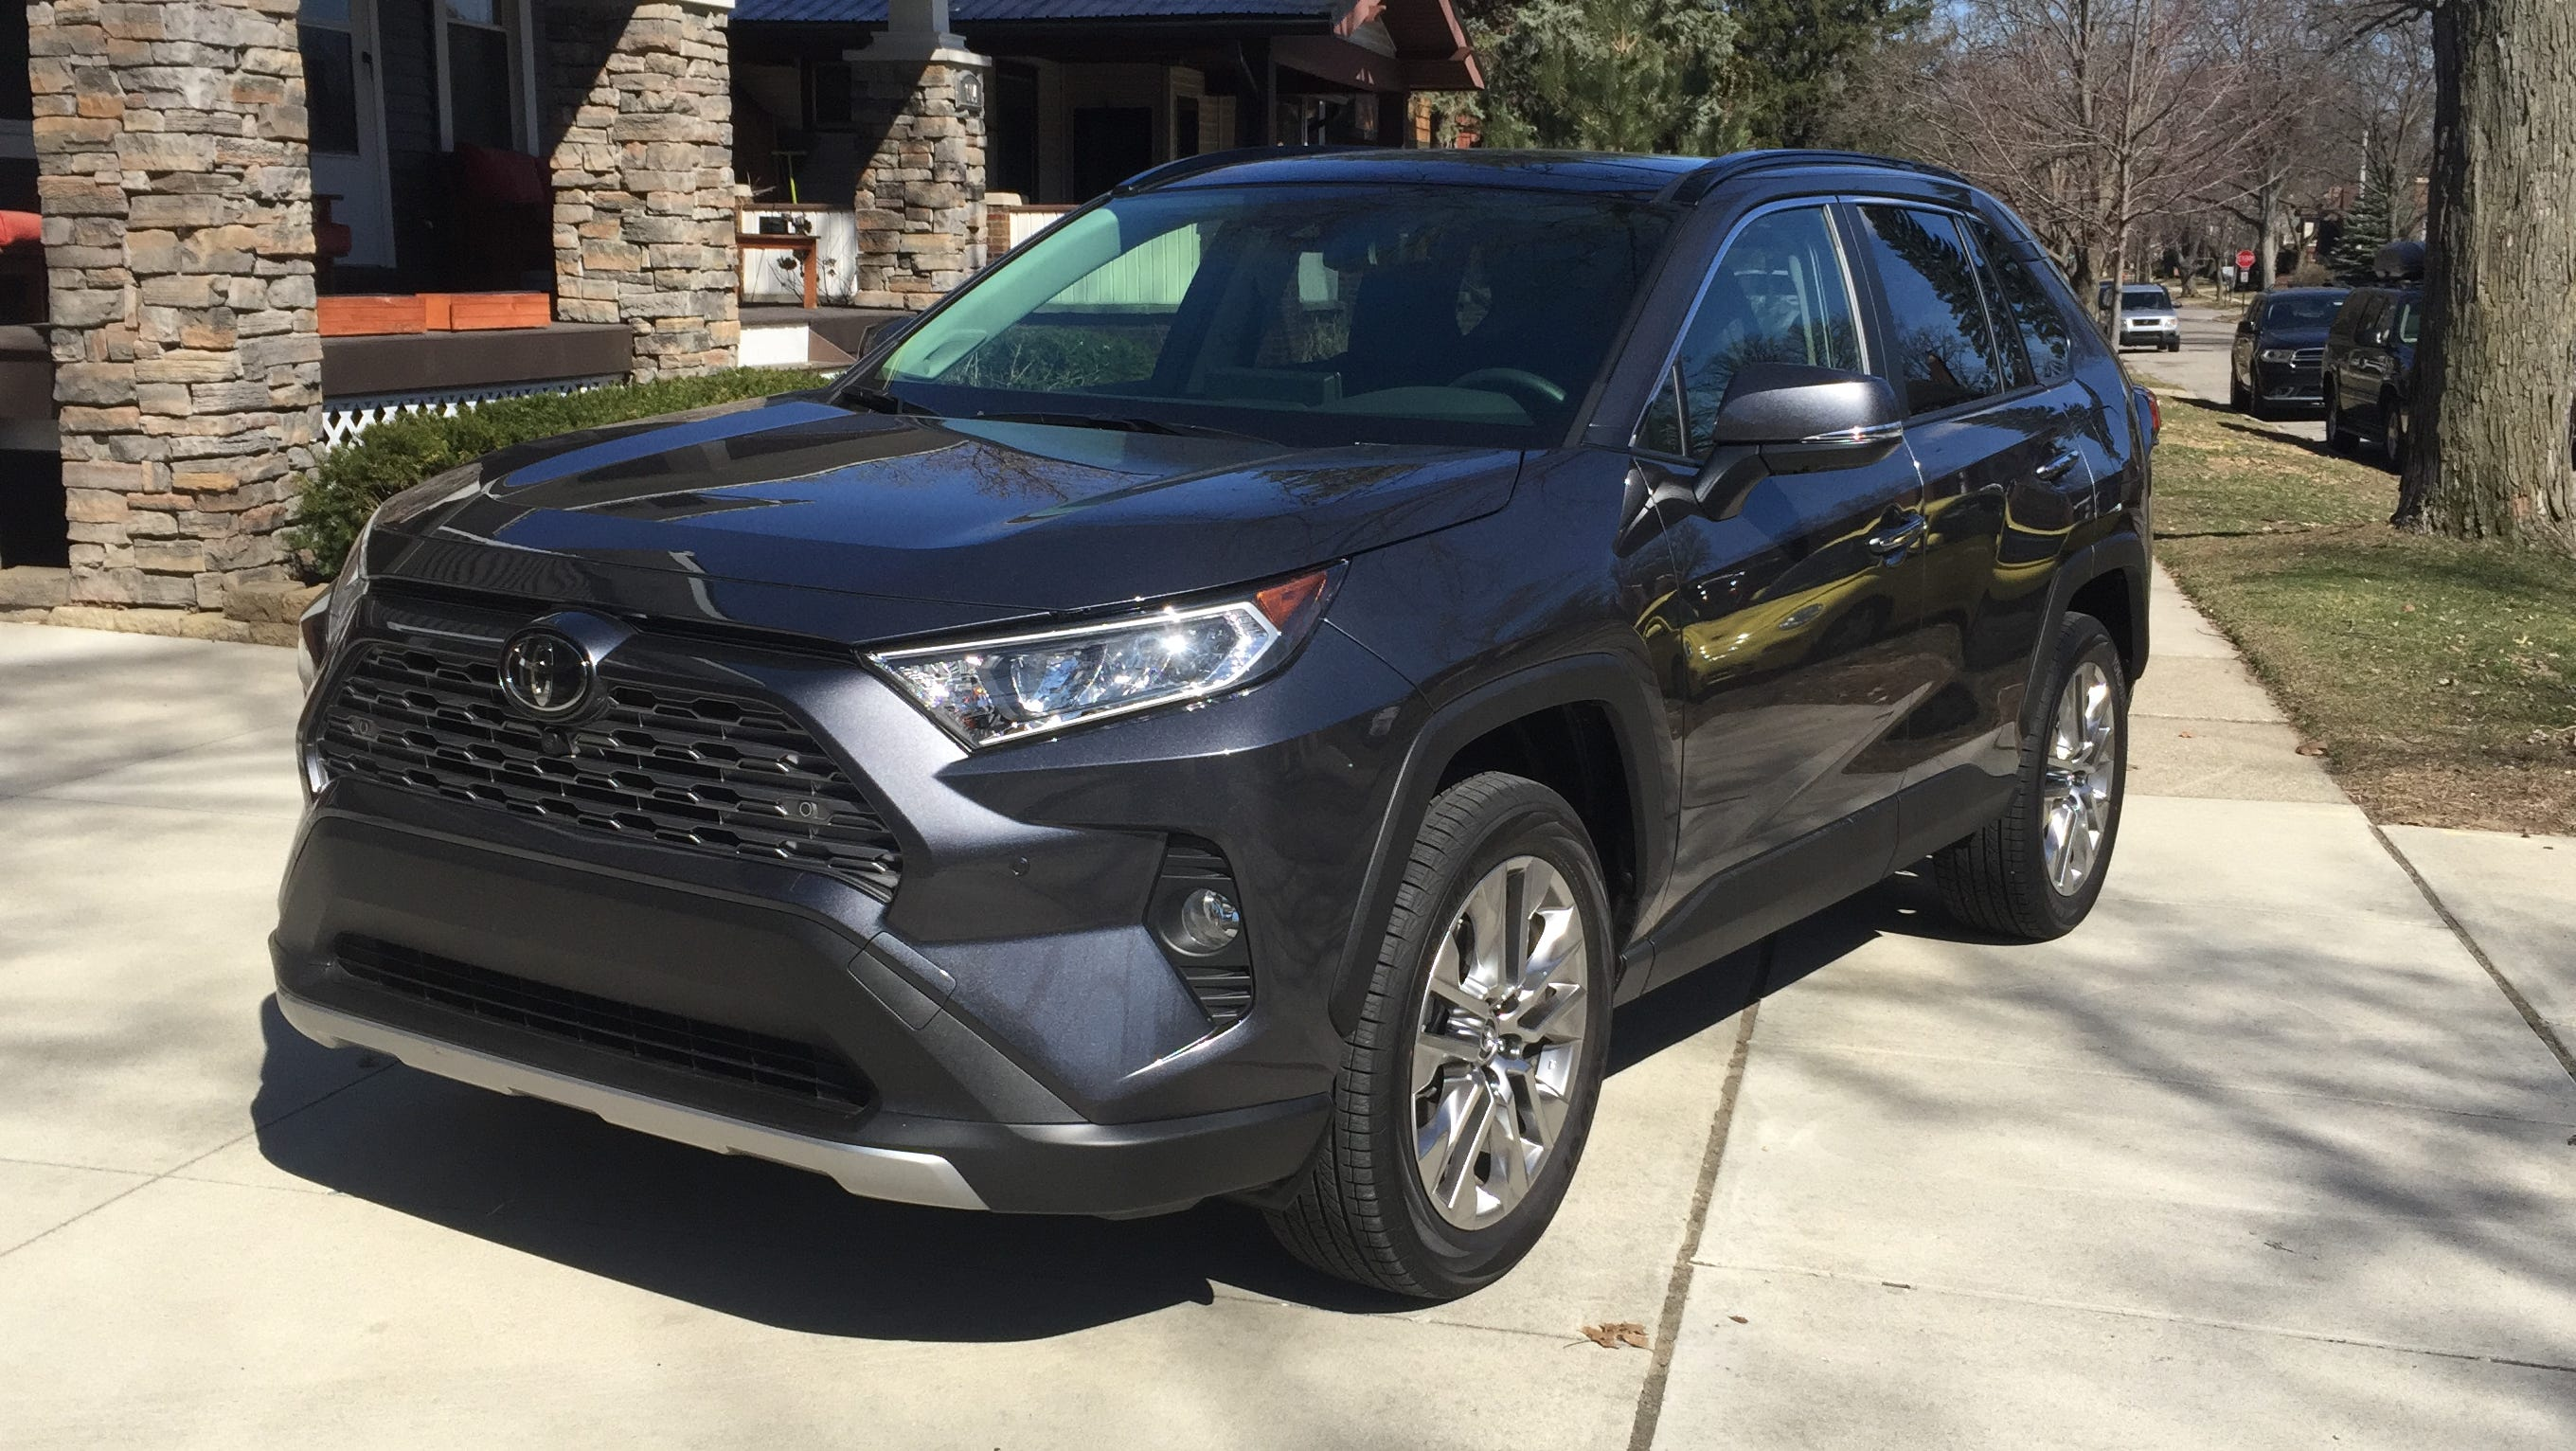 2019 Toyota RAV4: Rugged Styling, Well Equipped, More Off-road Capabilty >> Video Review 2019 Toyota Rav4